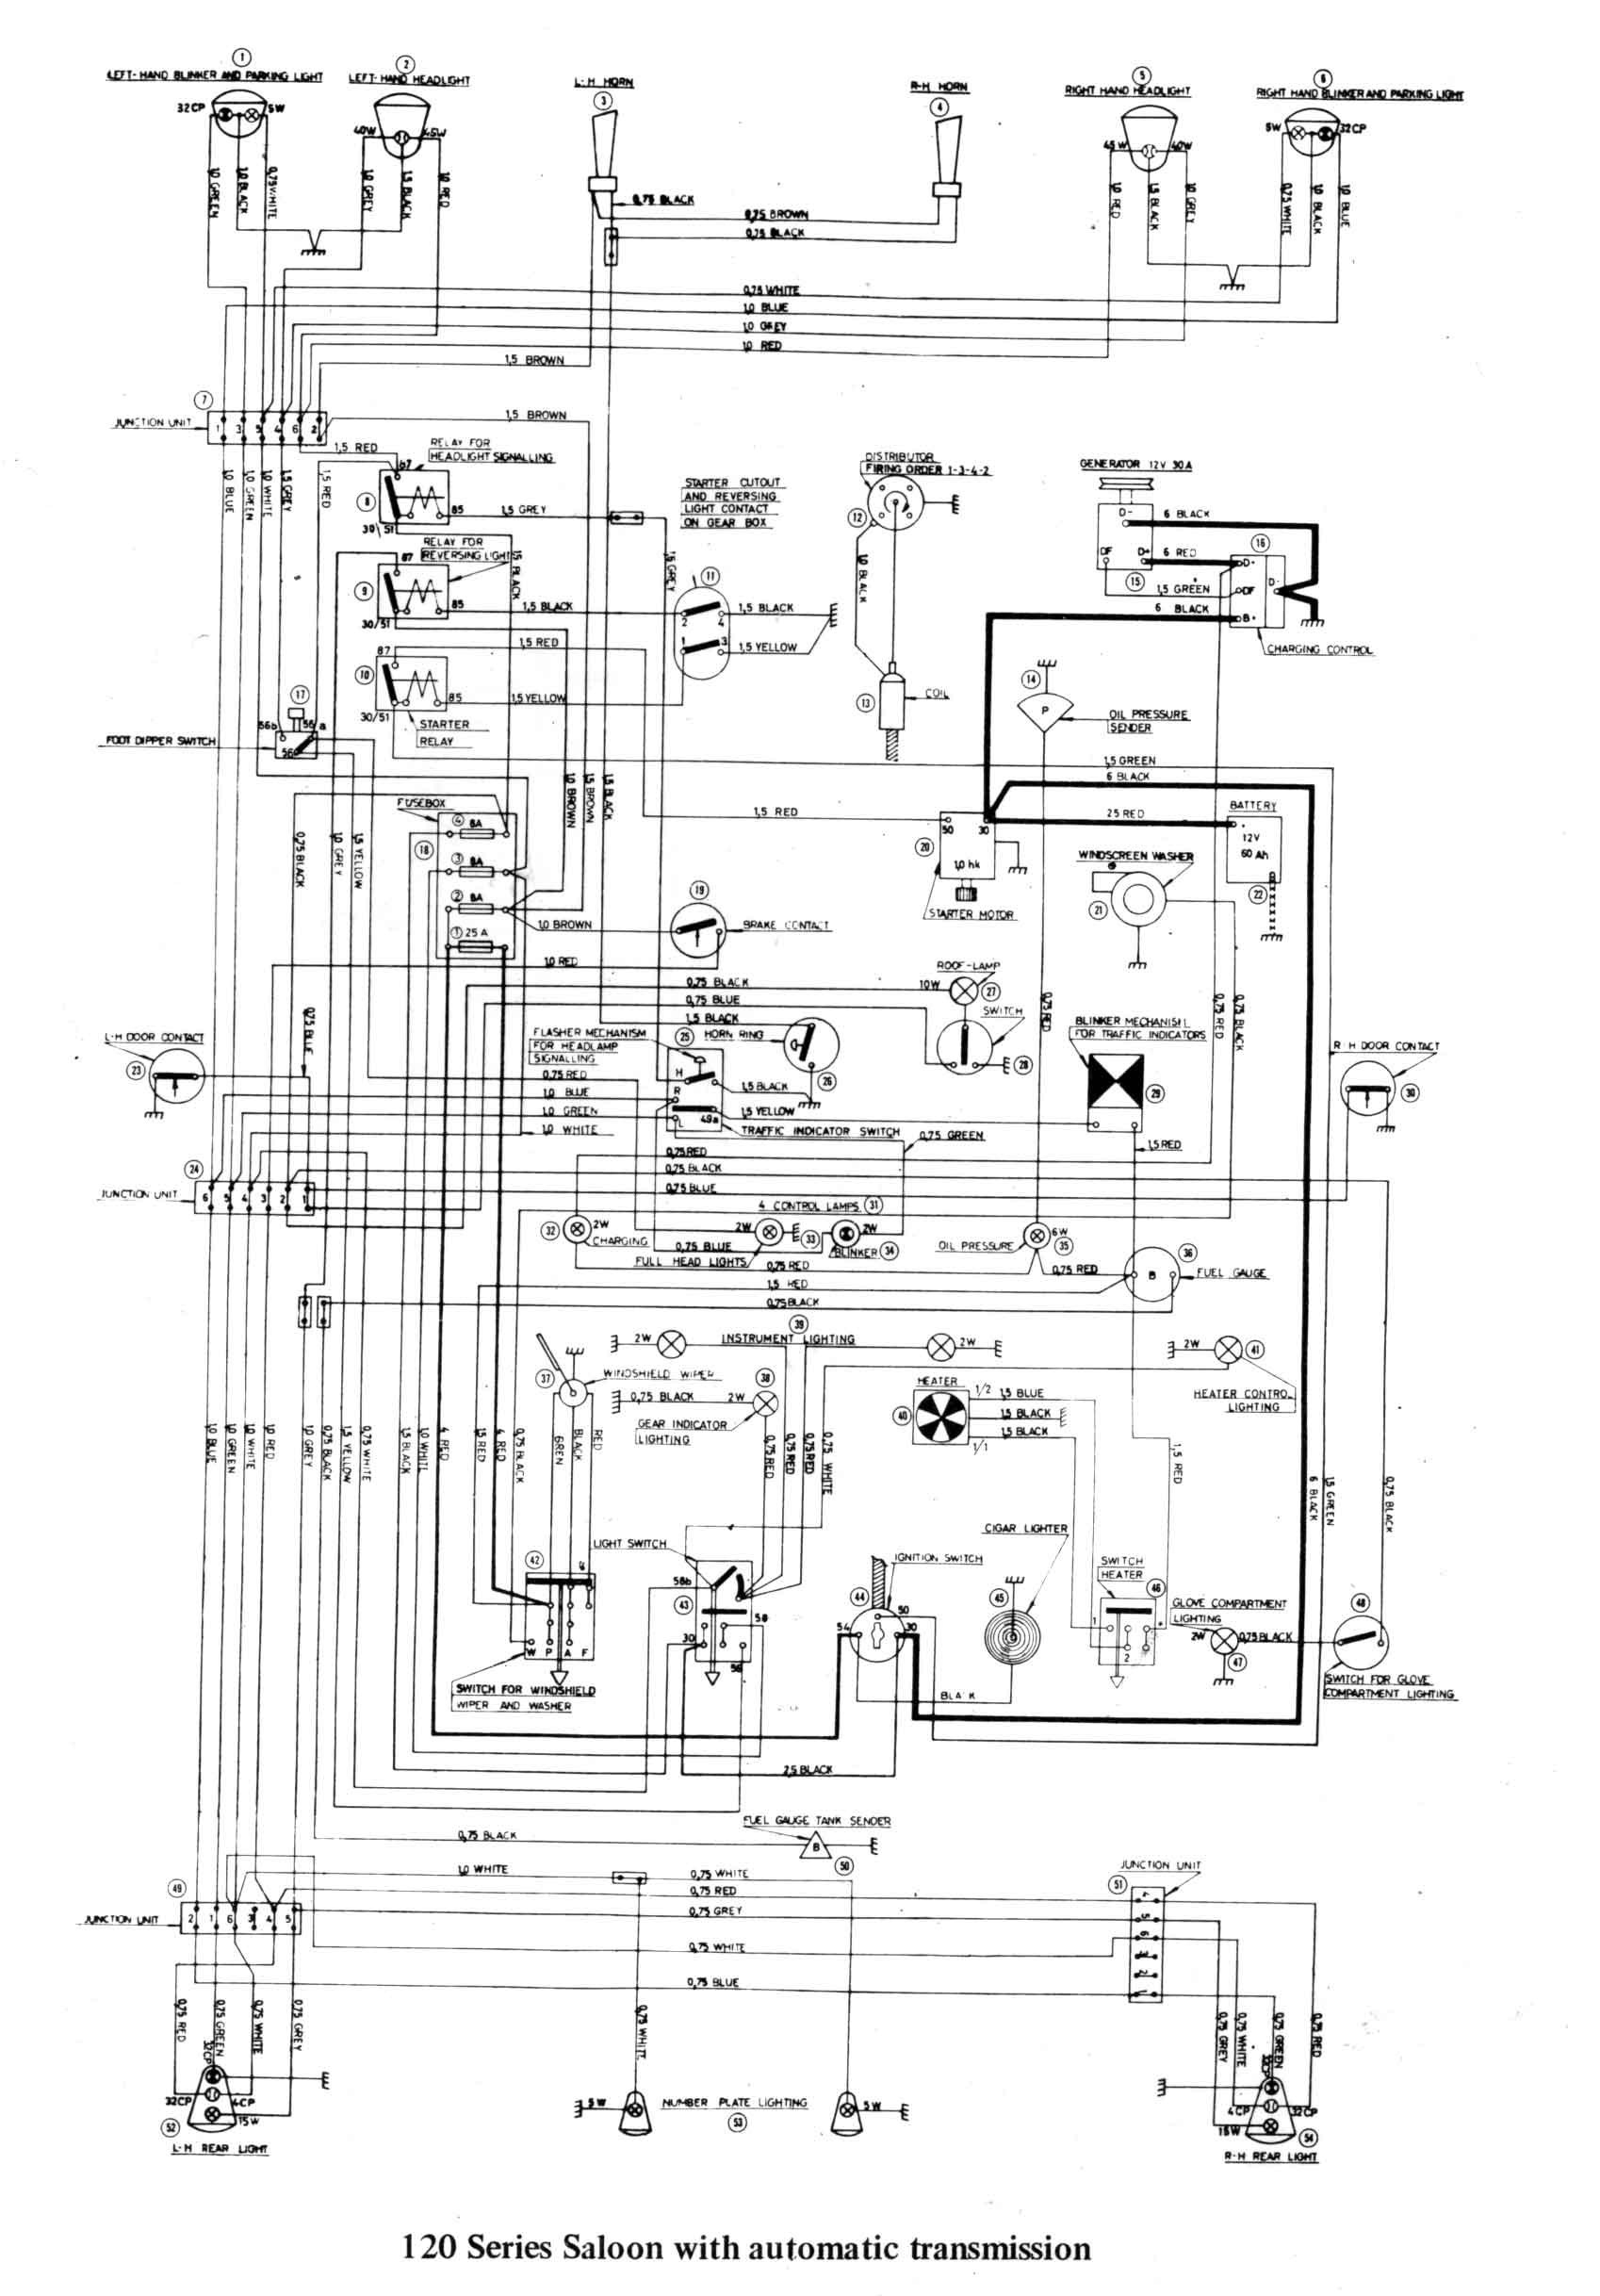 240 Volt Wiring Diagram Wiring Diagram Image 1992 Chevy Alternator Wiring  Diagram Starter Wiring Diagram 1992 240 Volvo